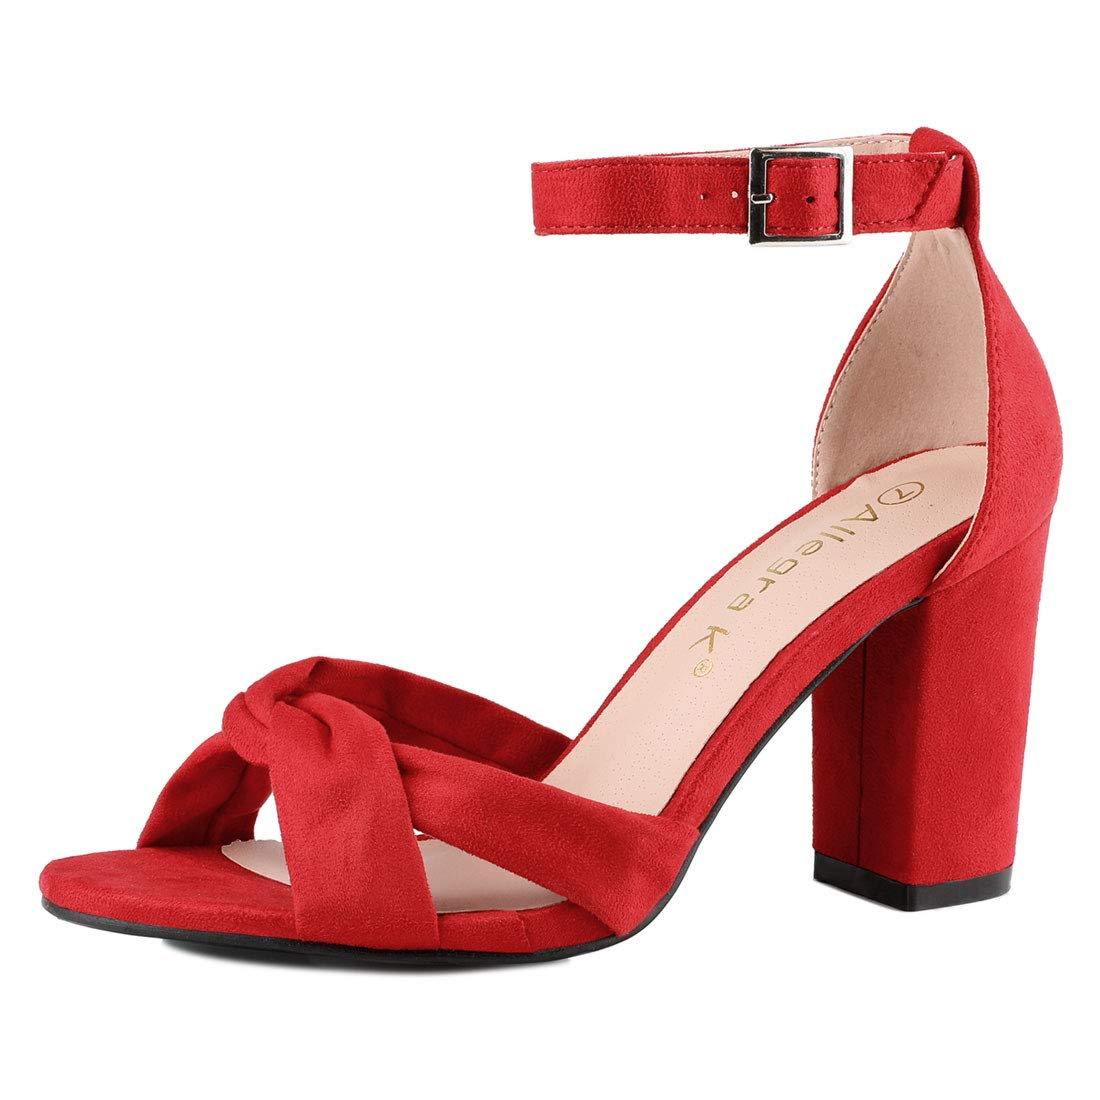 a8c1fb30c8b Allegra K Women s Ankle Strap GF Gift Sandals Red 7.5 UK Label Size 9.5 US